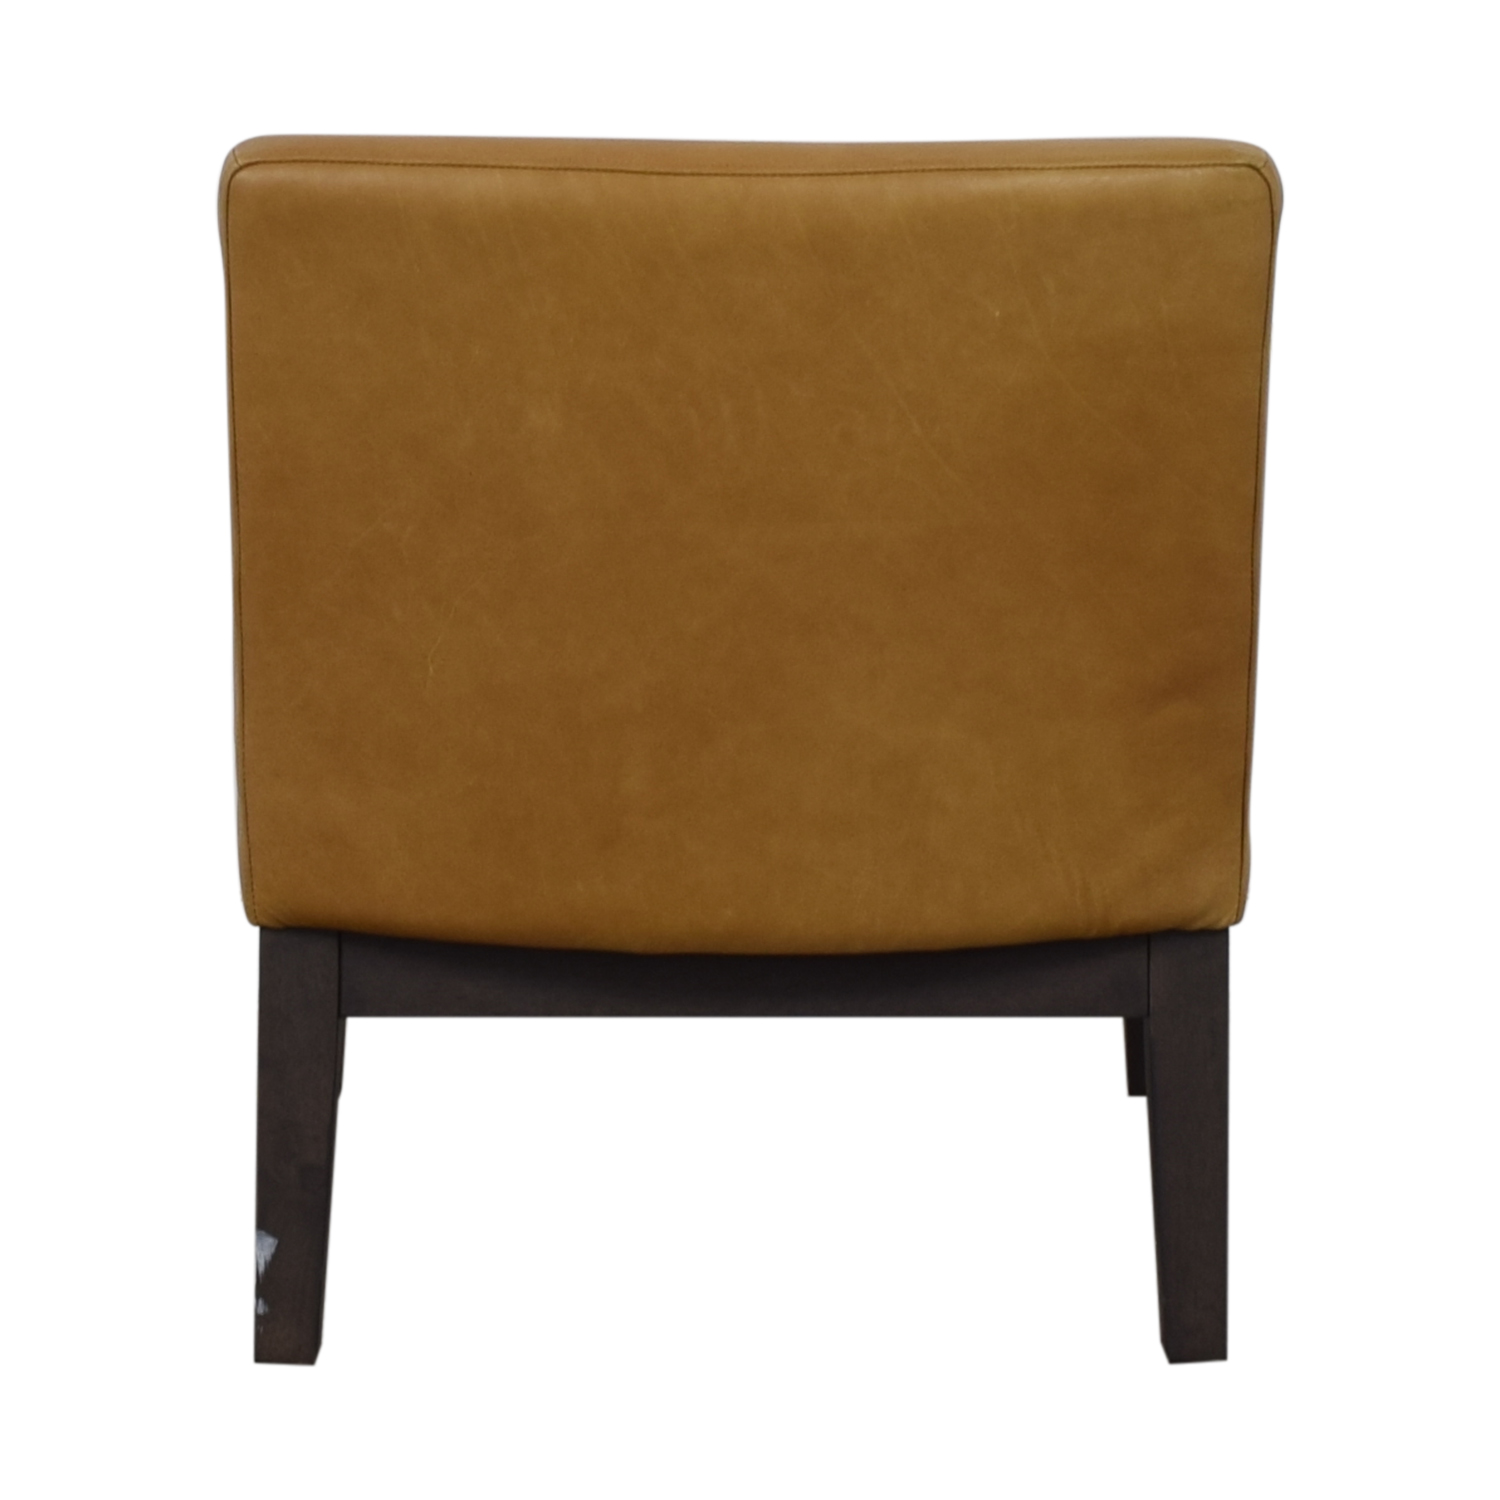 shop West Elm Orange Tan Leather Chair West Elm Chairs